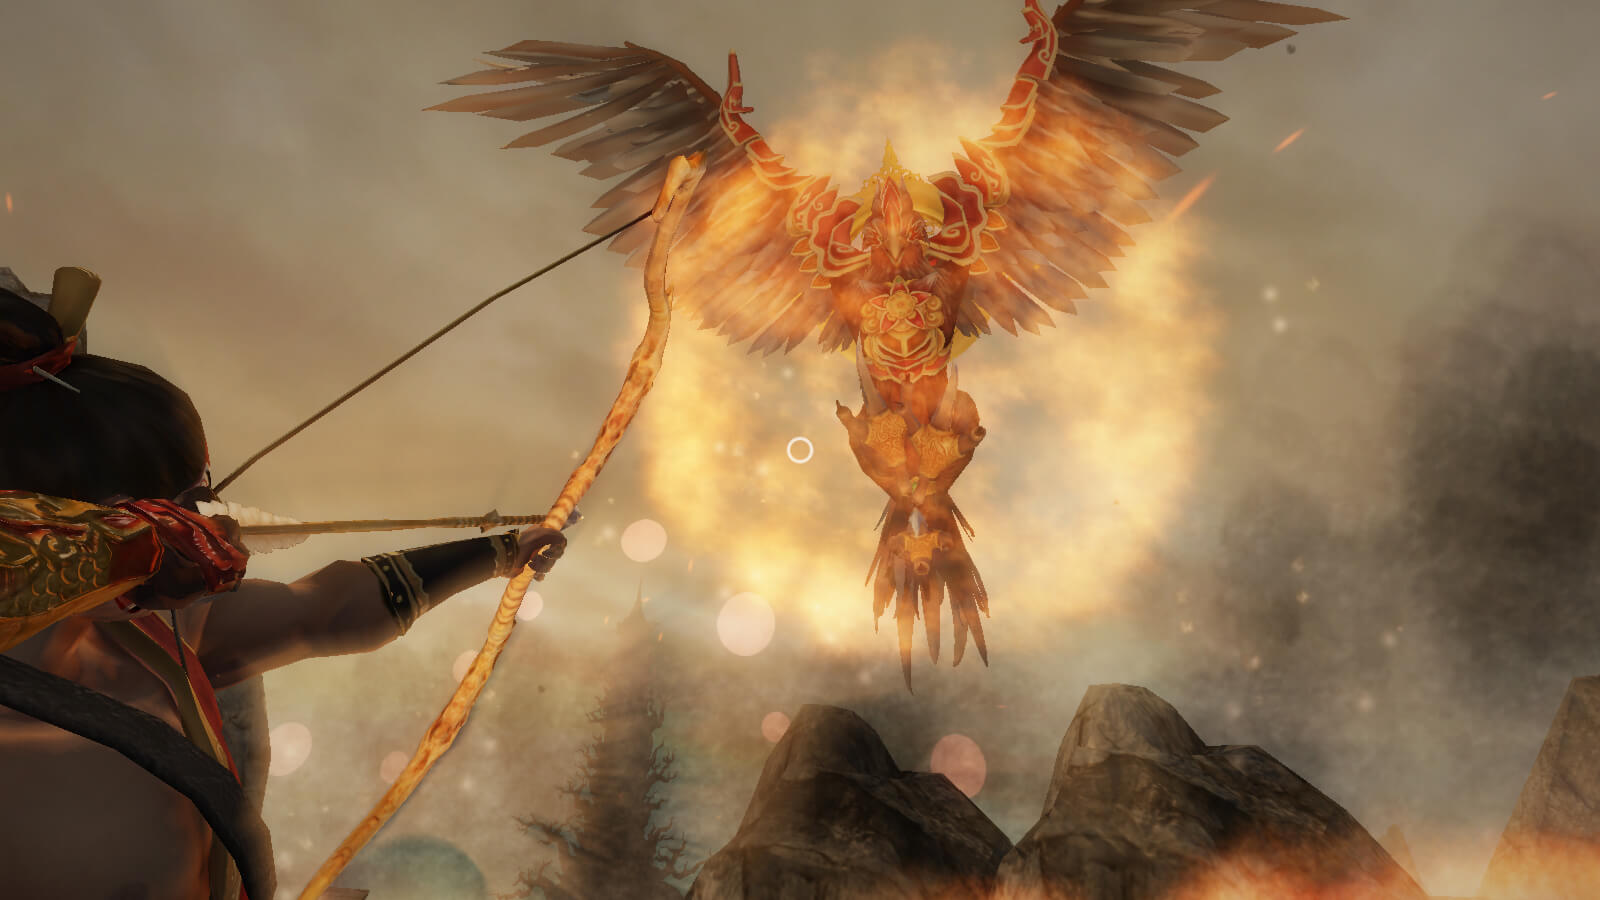 The player taking aim at a glowing, fiery bird in the air with a bow and arrow